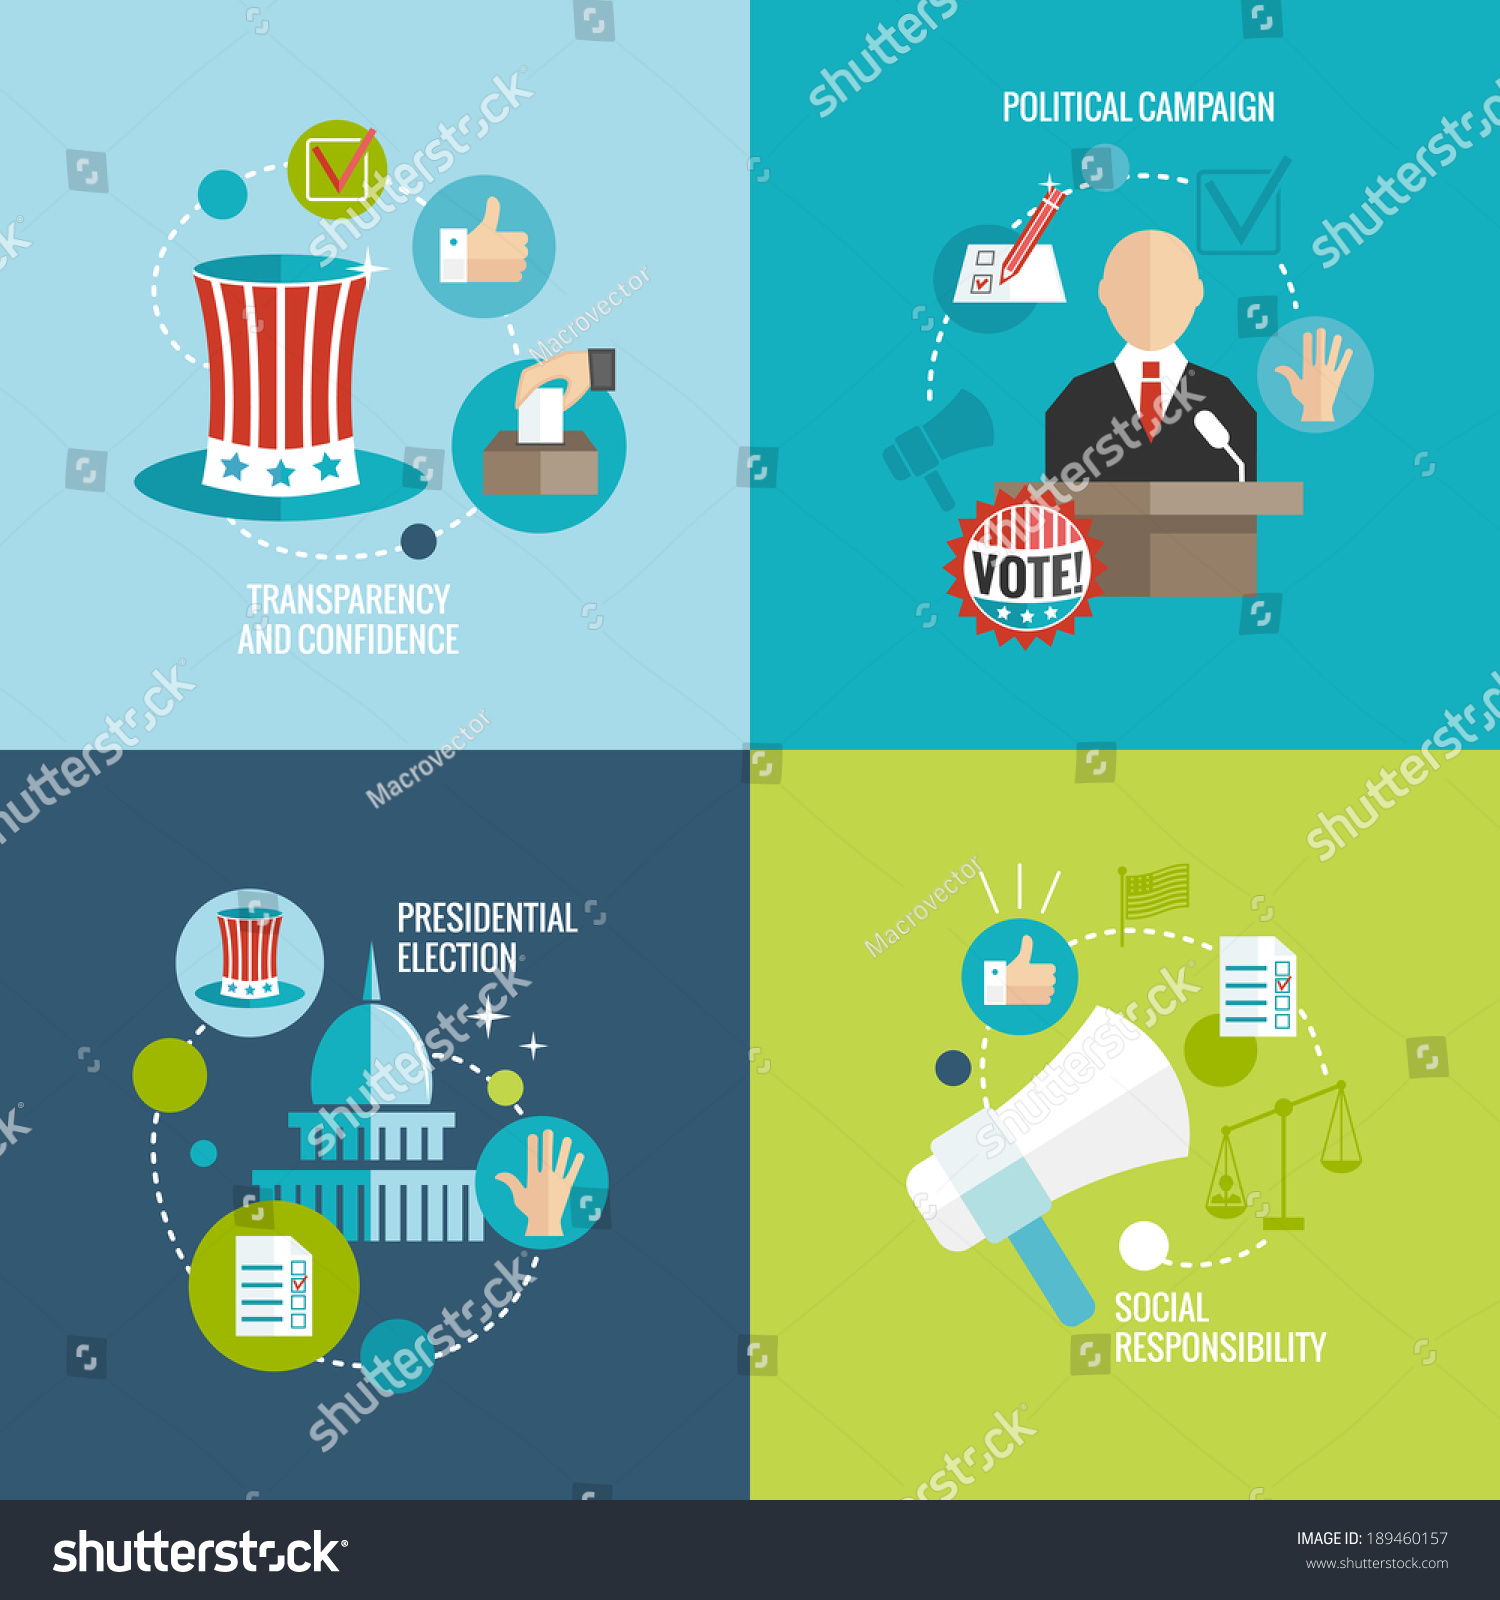 Presidential Election Transparency And Confidence Social Responsibility Political Campaign Decorative Icons Set Isolated Vector Illustration ...